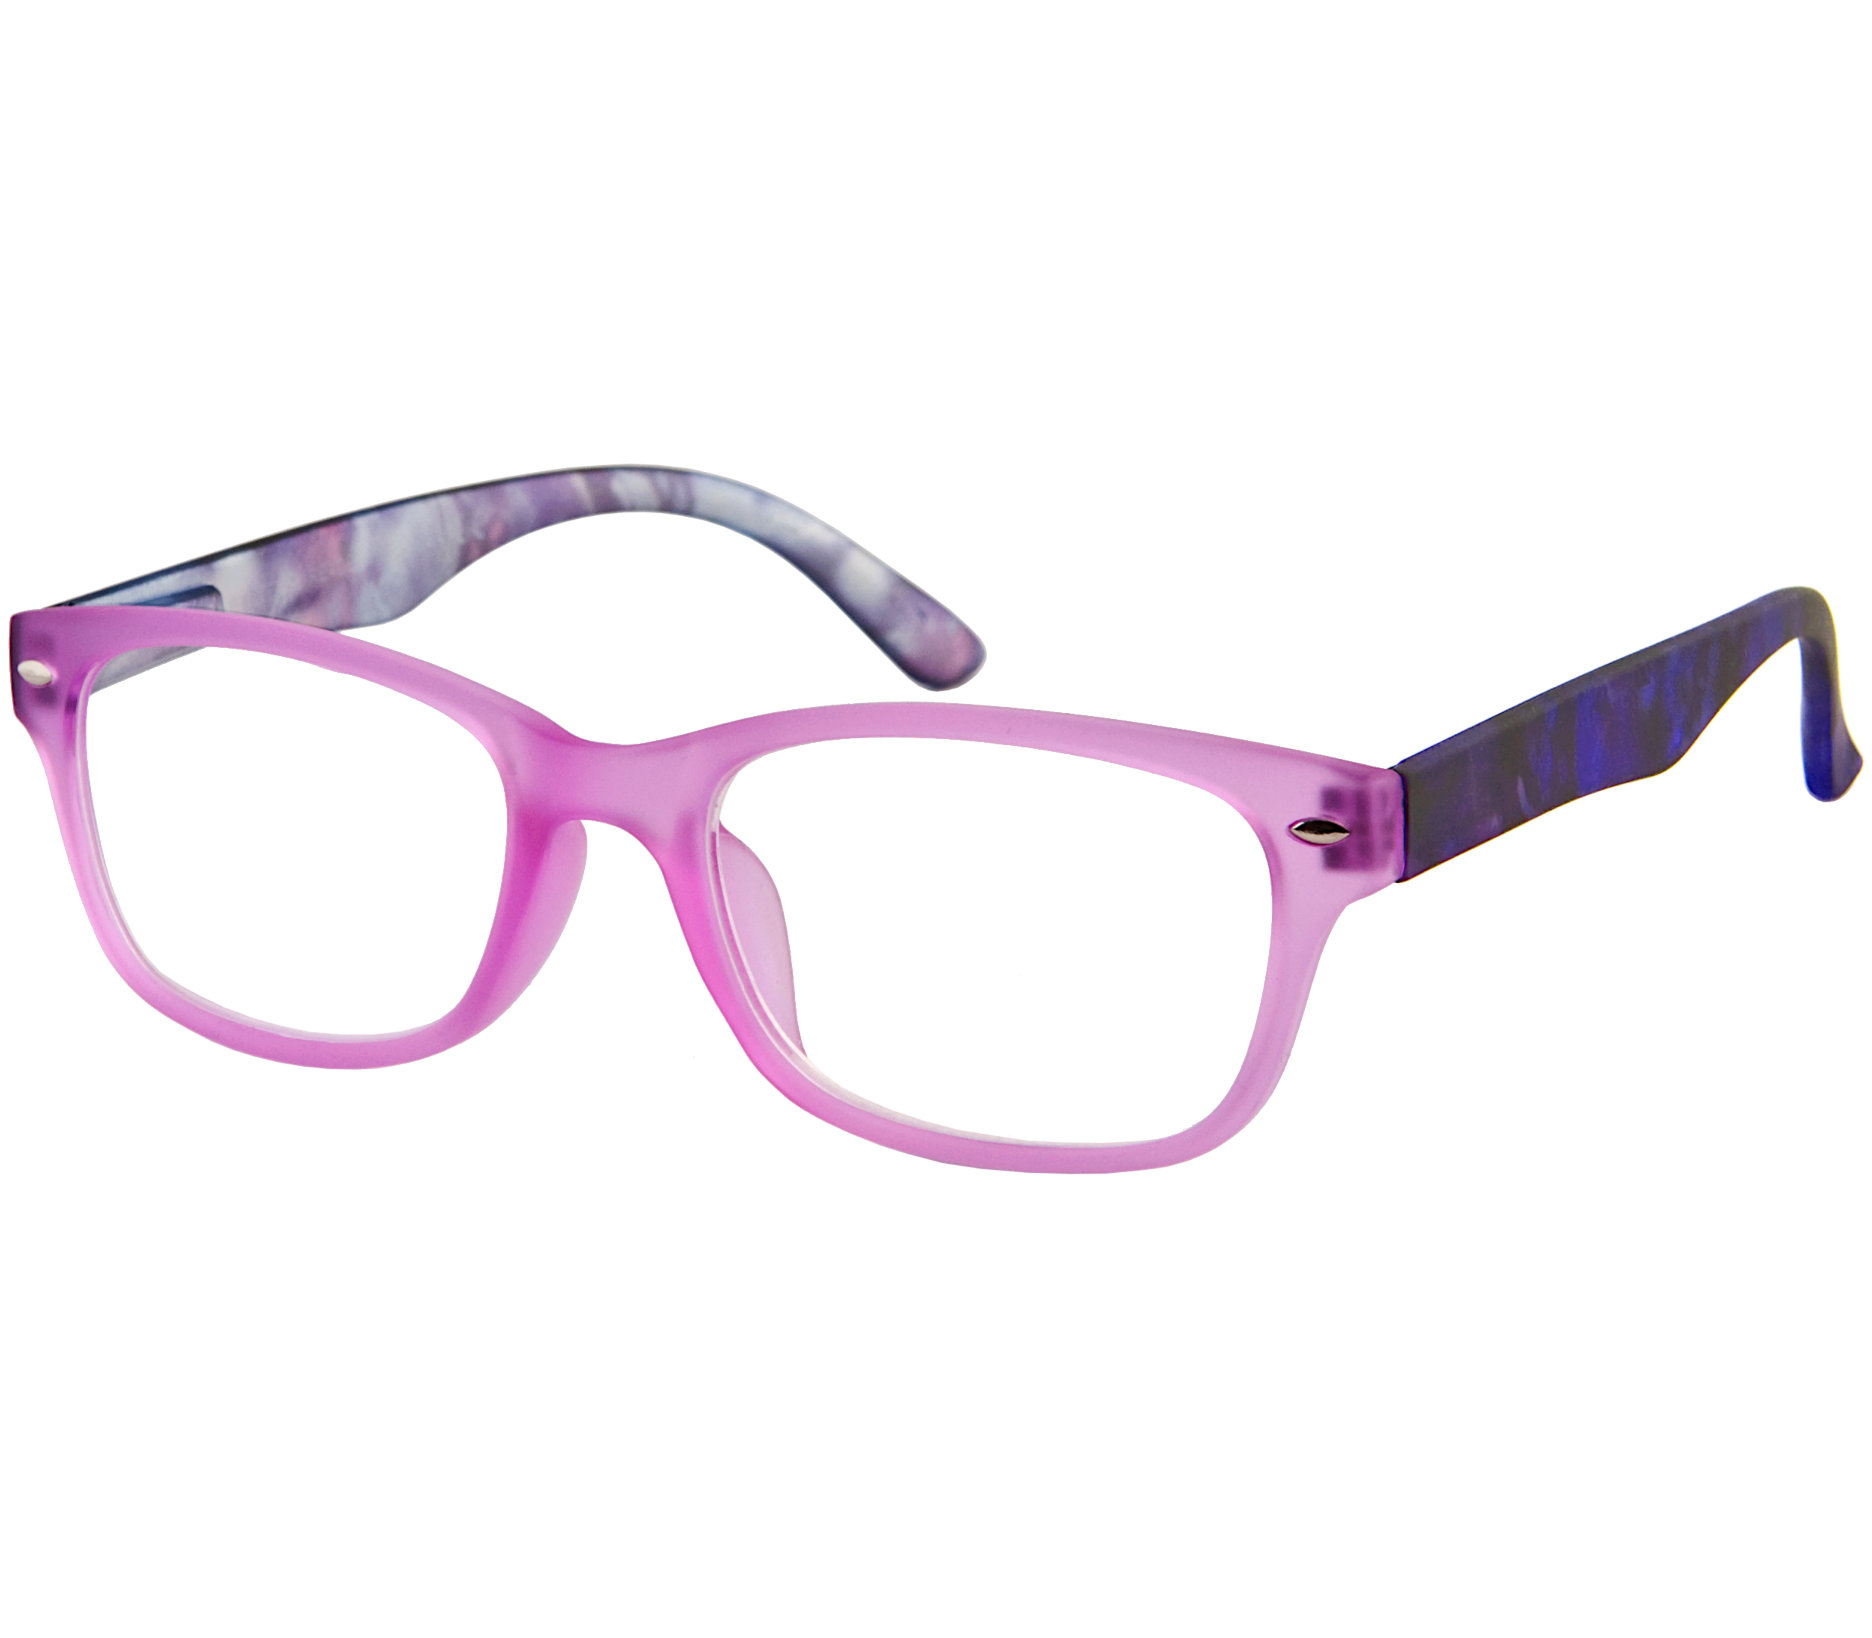 Main Image (Angle) - Freedom (Pink) Reading Glasses